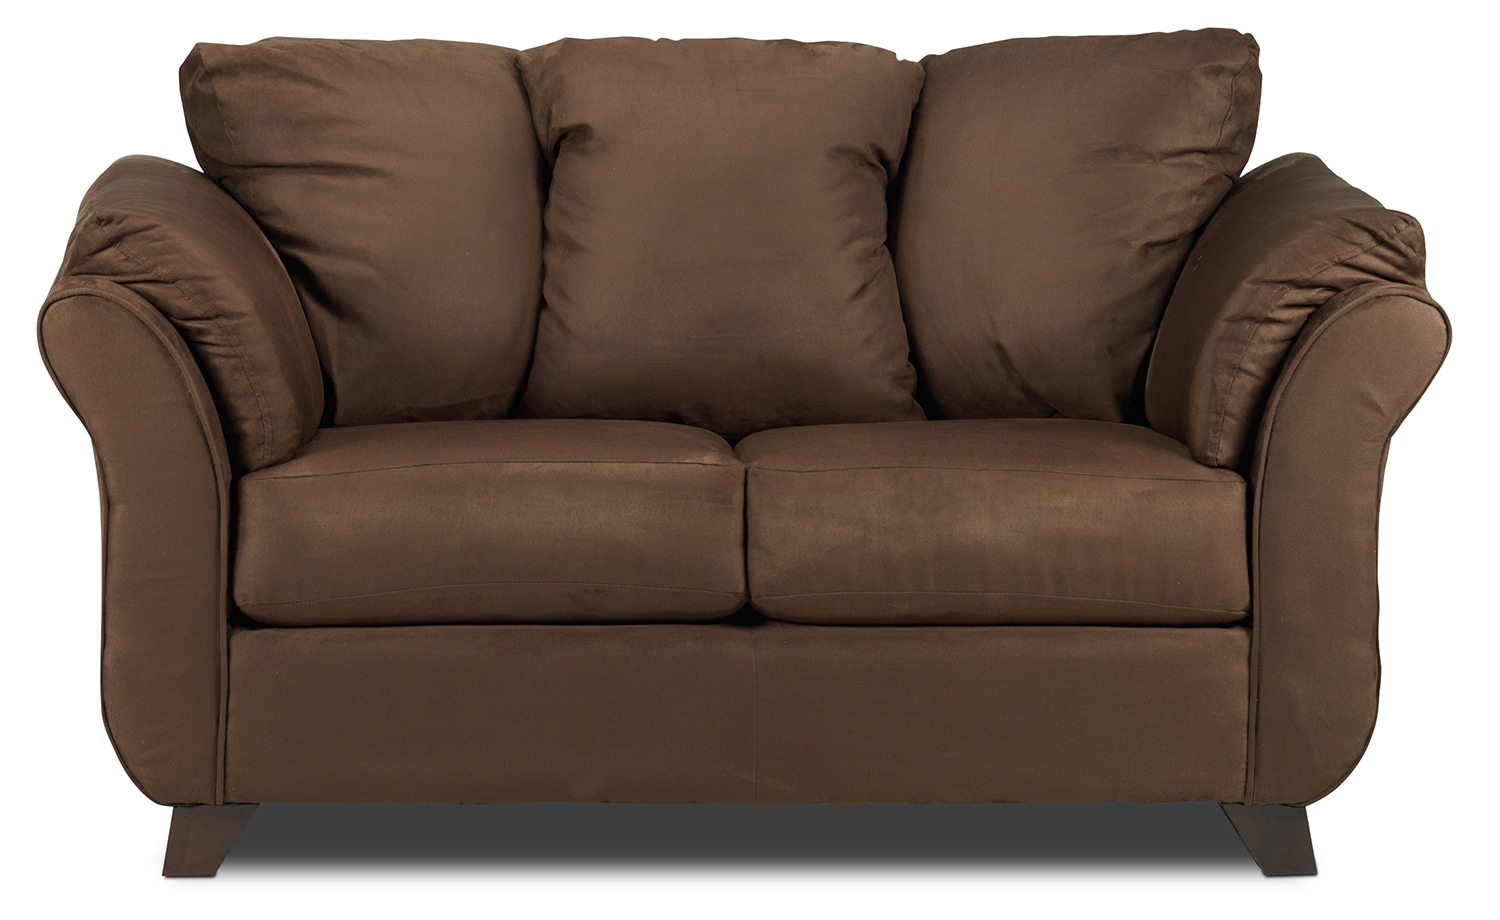 Living Room Furniture - Collier Loveseat - Chocolate